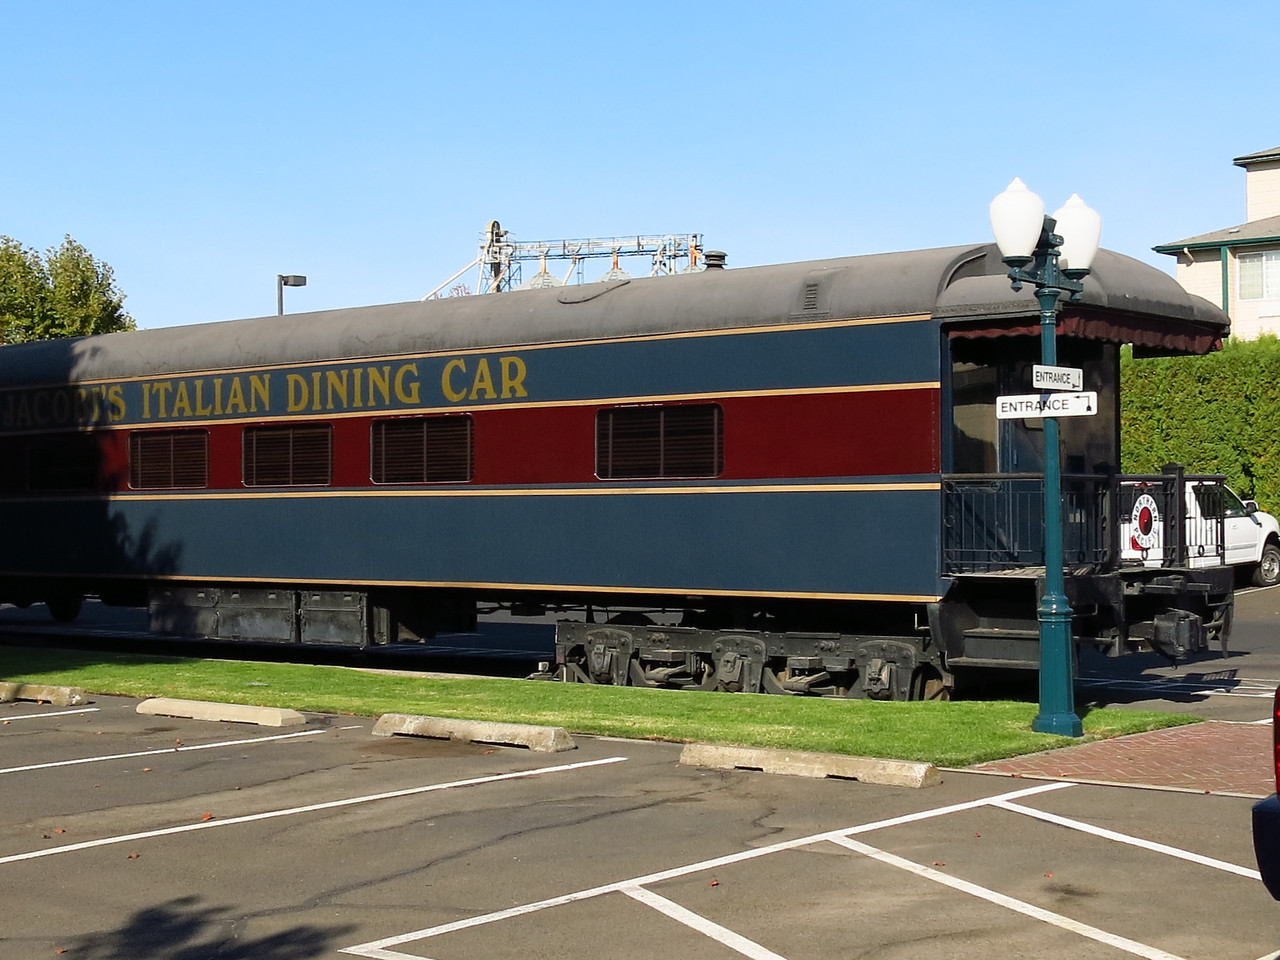 When we came back to dinner, we ate in this dining car.